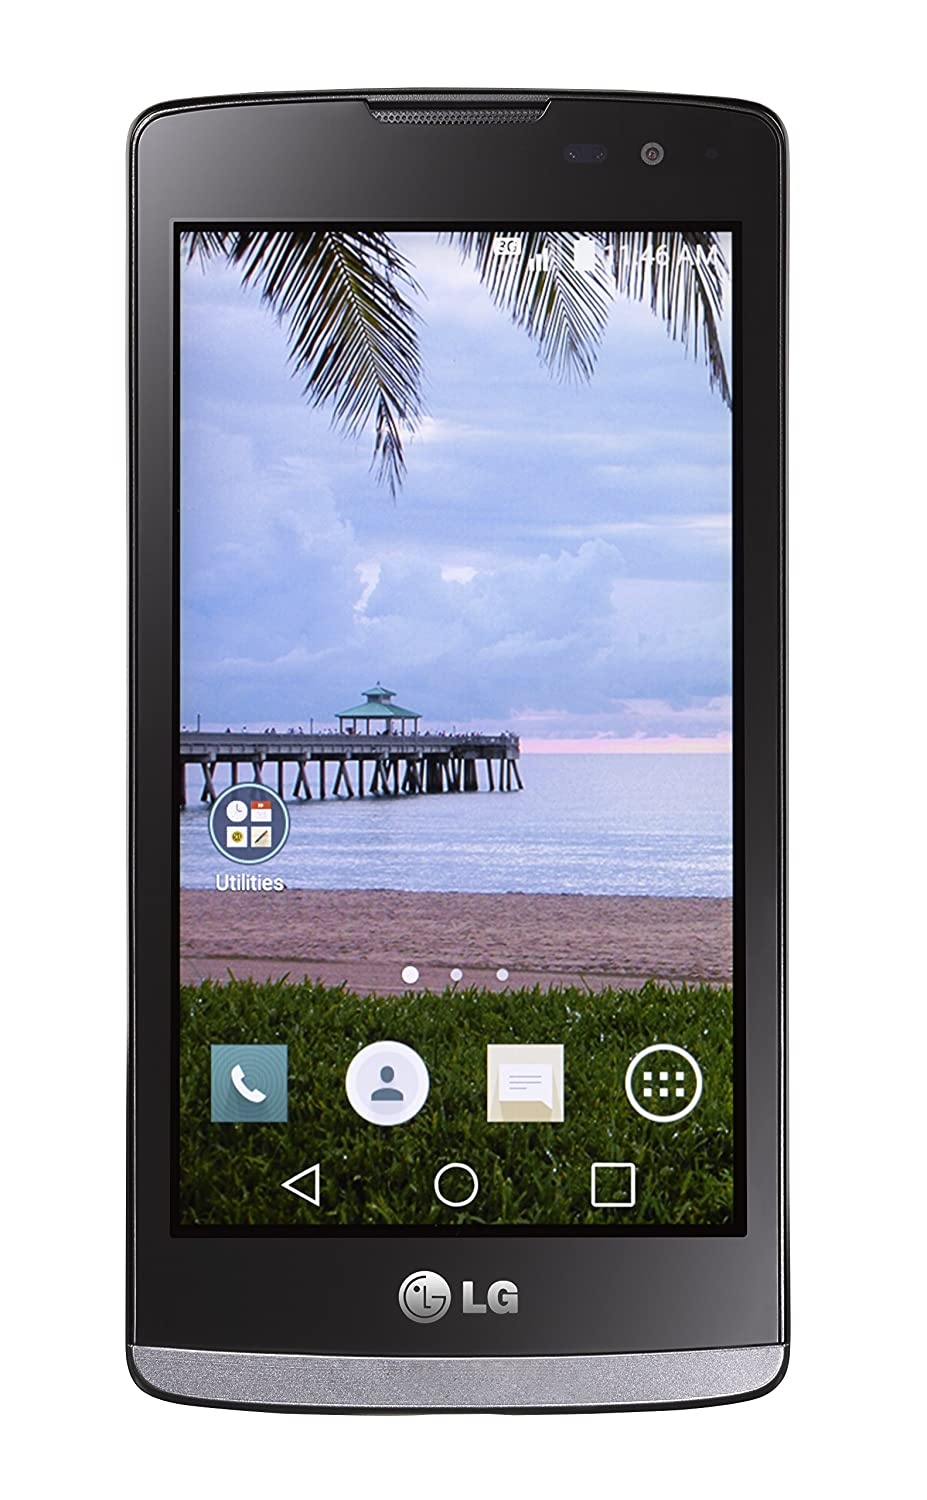 TracFone LG L33L Sunset 4G LTE Android Prepaid Smartphone - Retail Packaging